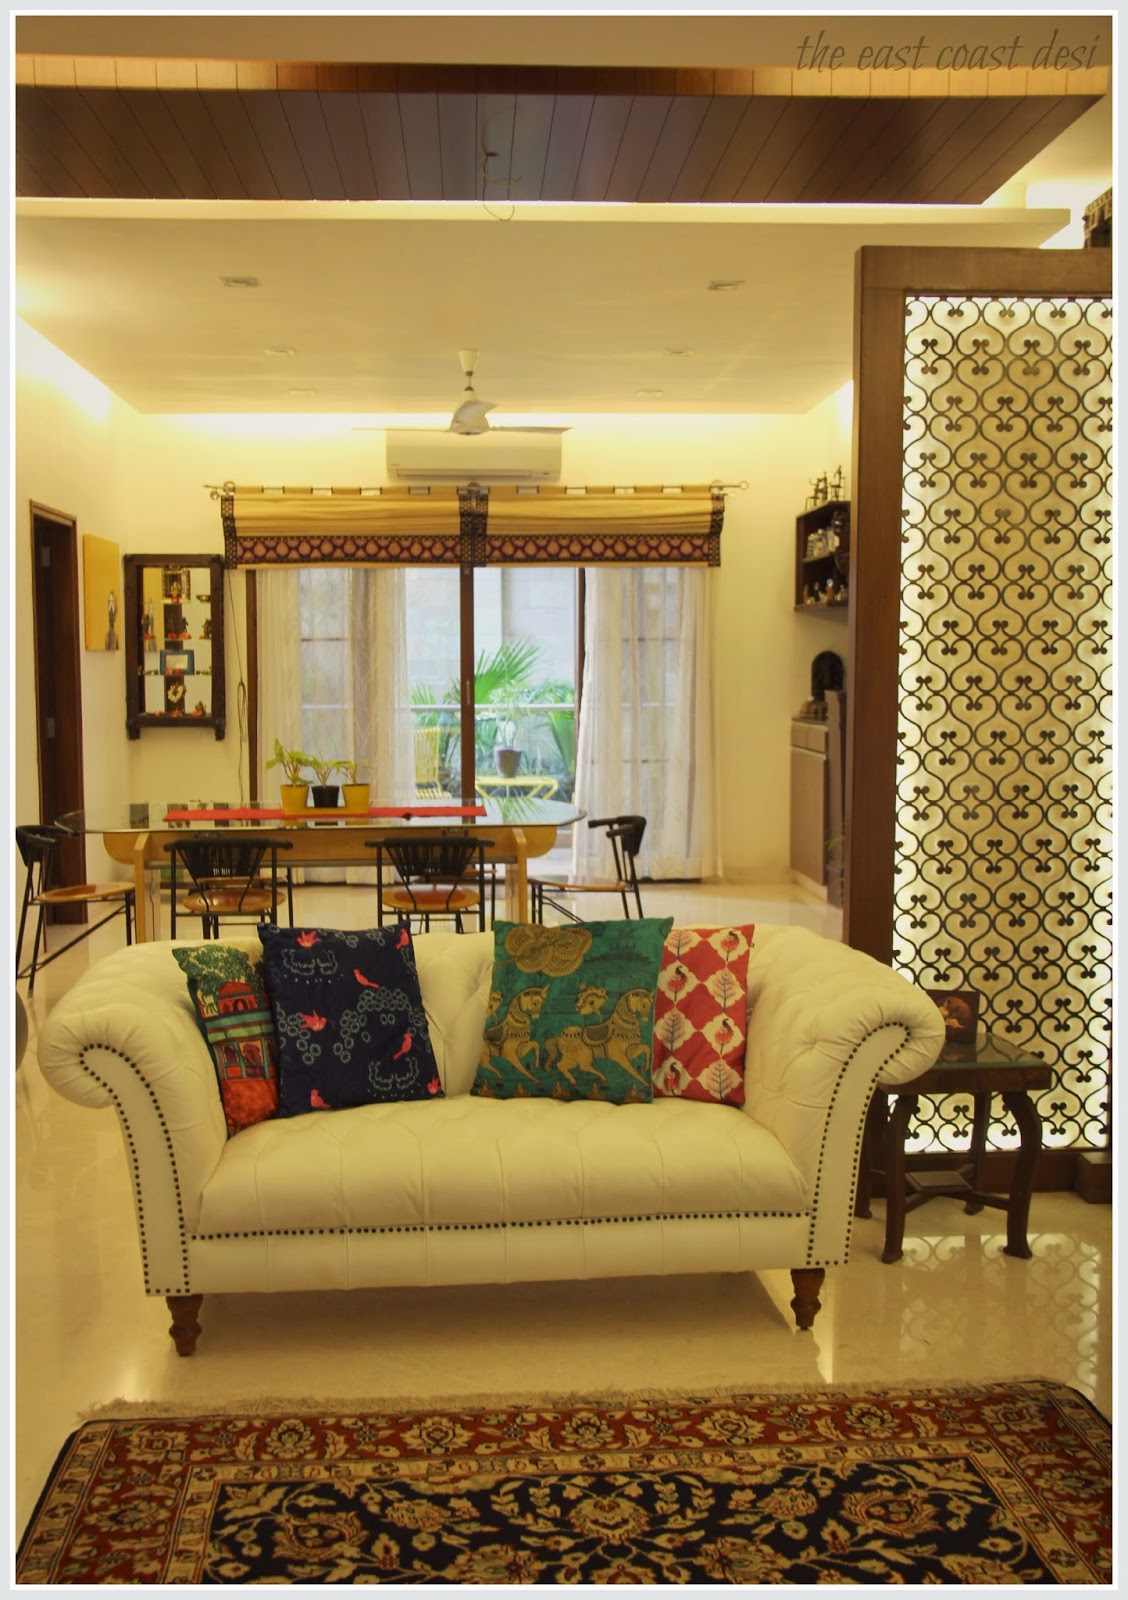 The east coast desi masterful mixing home tour for Interior design ideas indian style